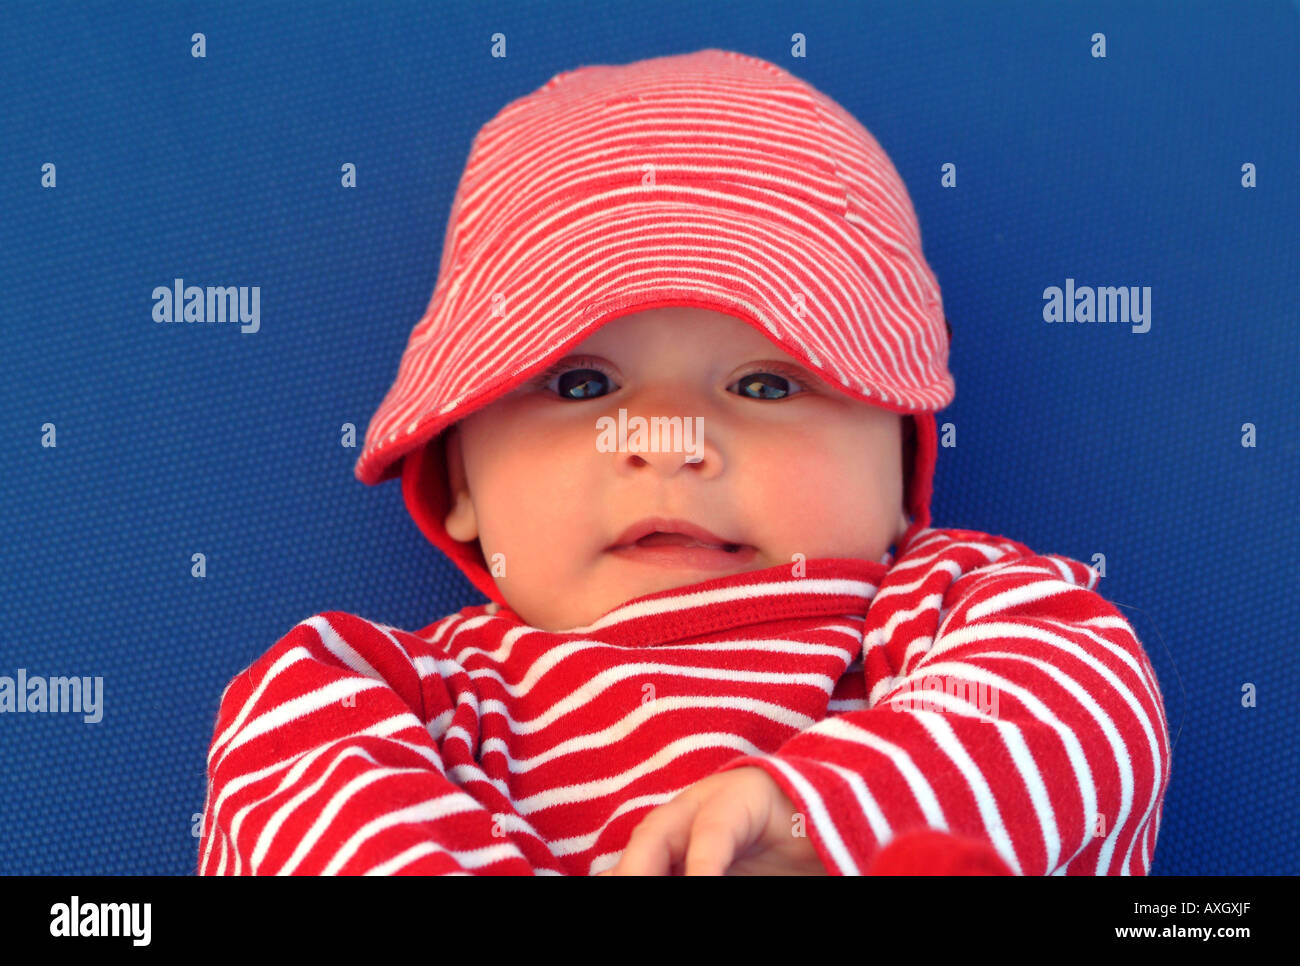 confident 6 months old Baby with hat closeup zufriedenes 6 Monate altes Baby mit Mütze - Stock Image